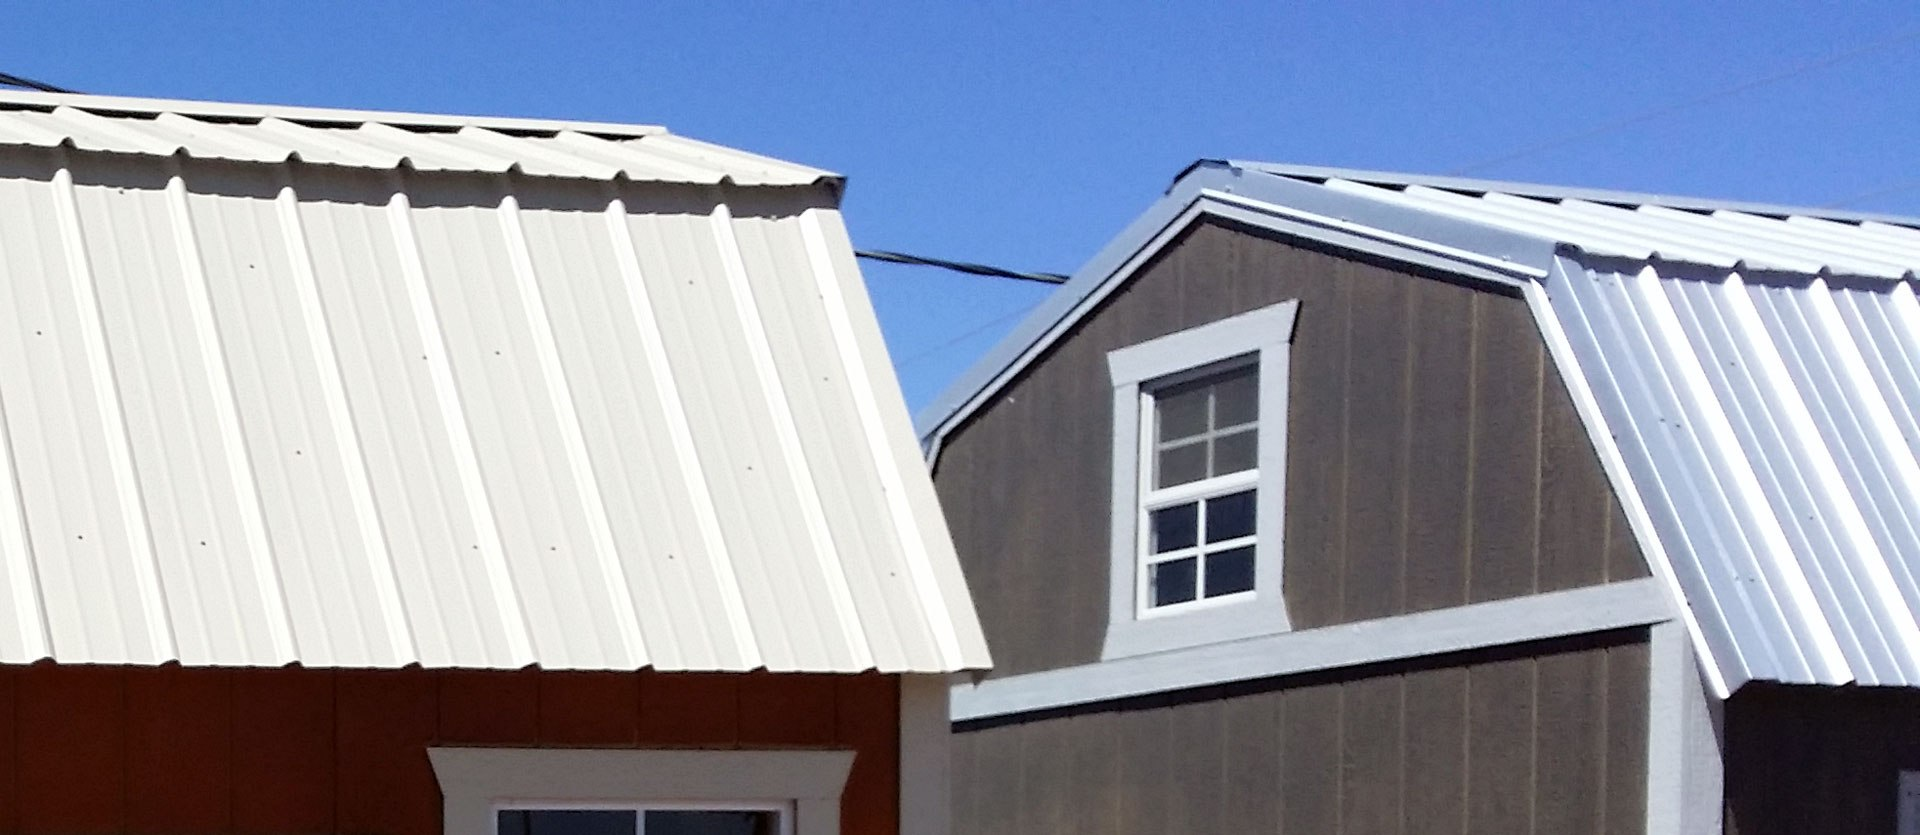 metal roof made by metal roofing manufacturers